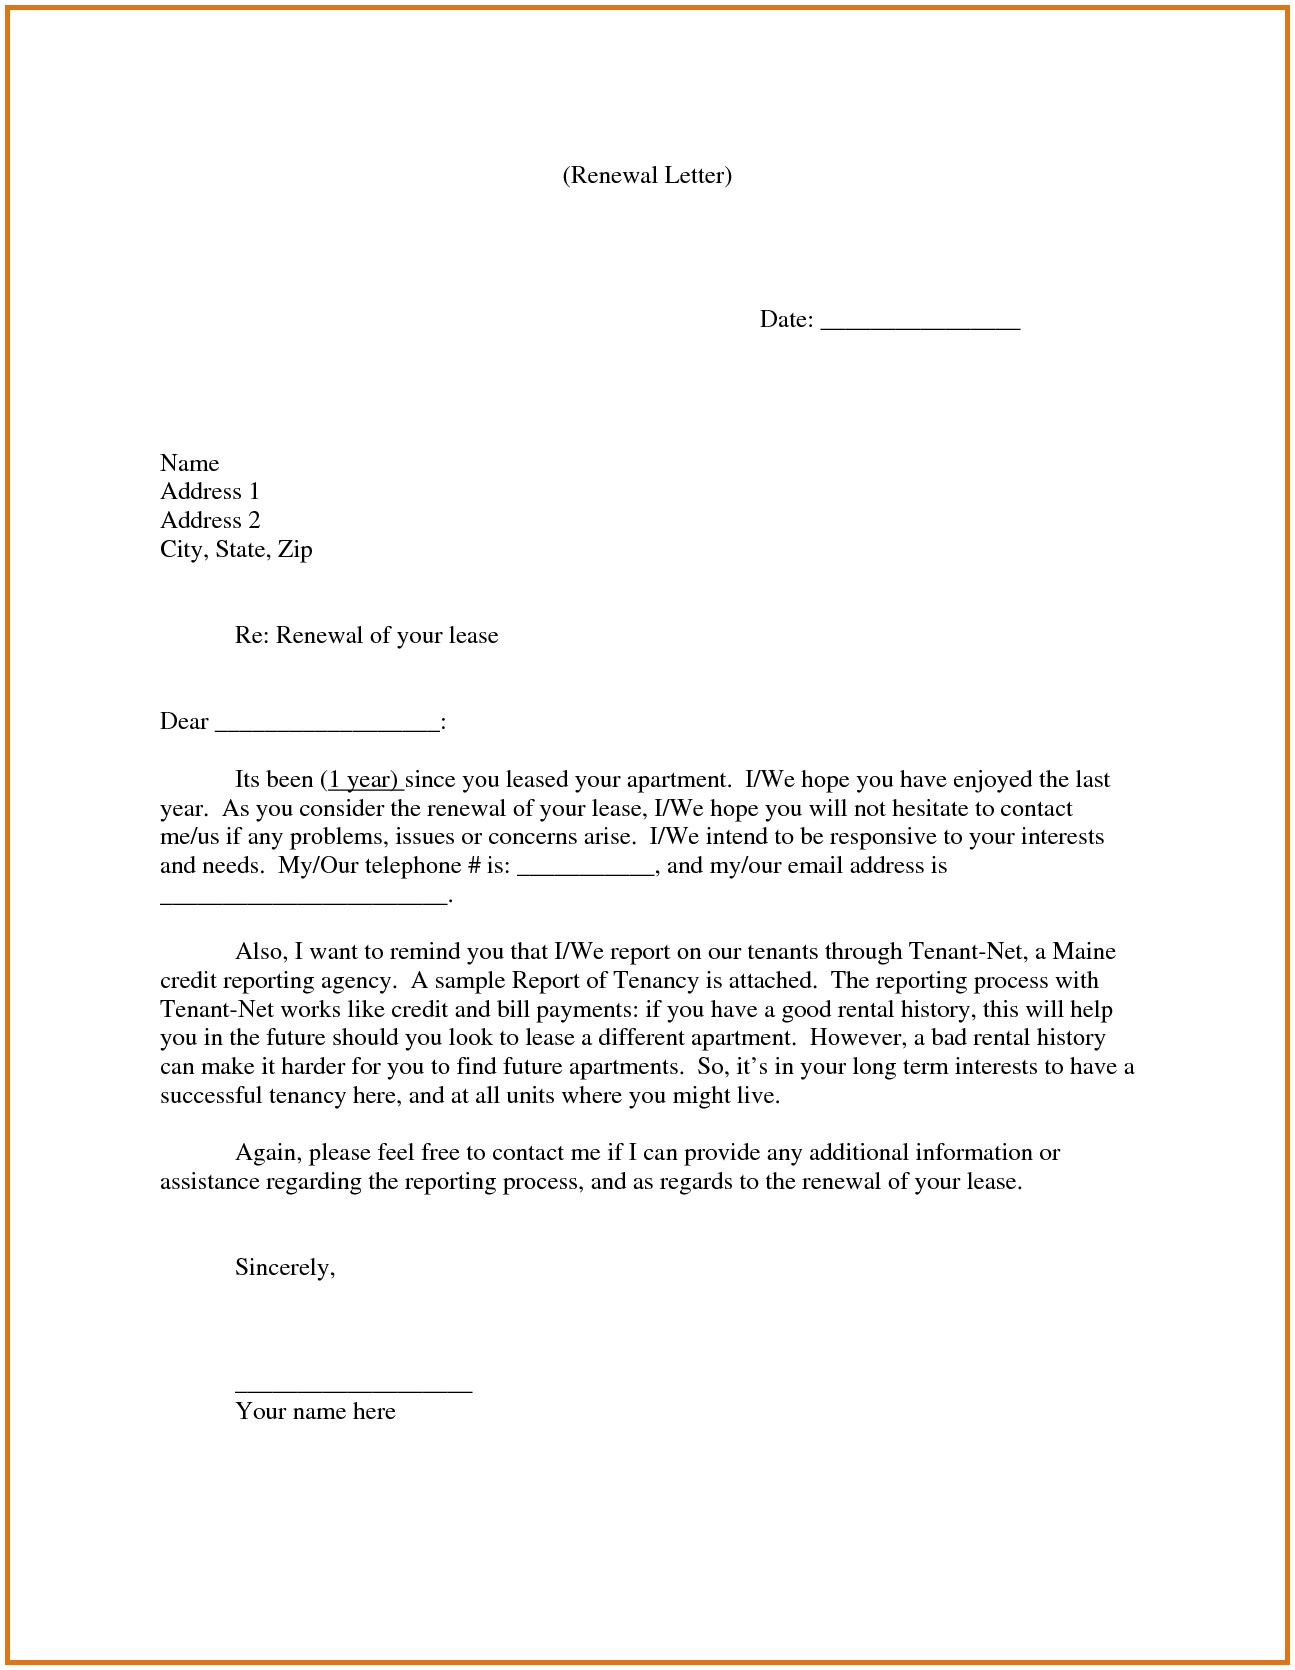 Lease Extension Letter Template - Lease Renewal Letter Lease Renewal Letter – Careyhead